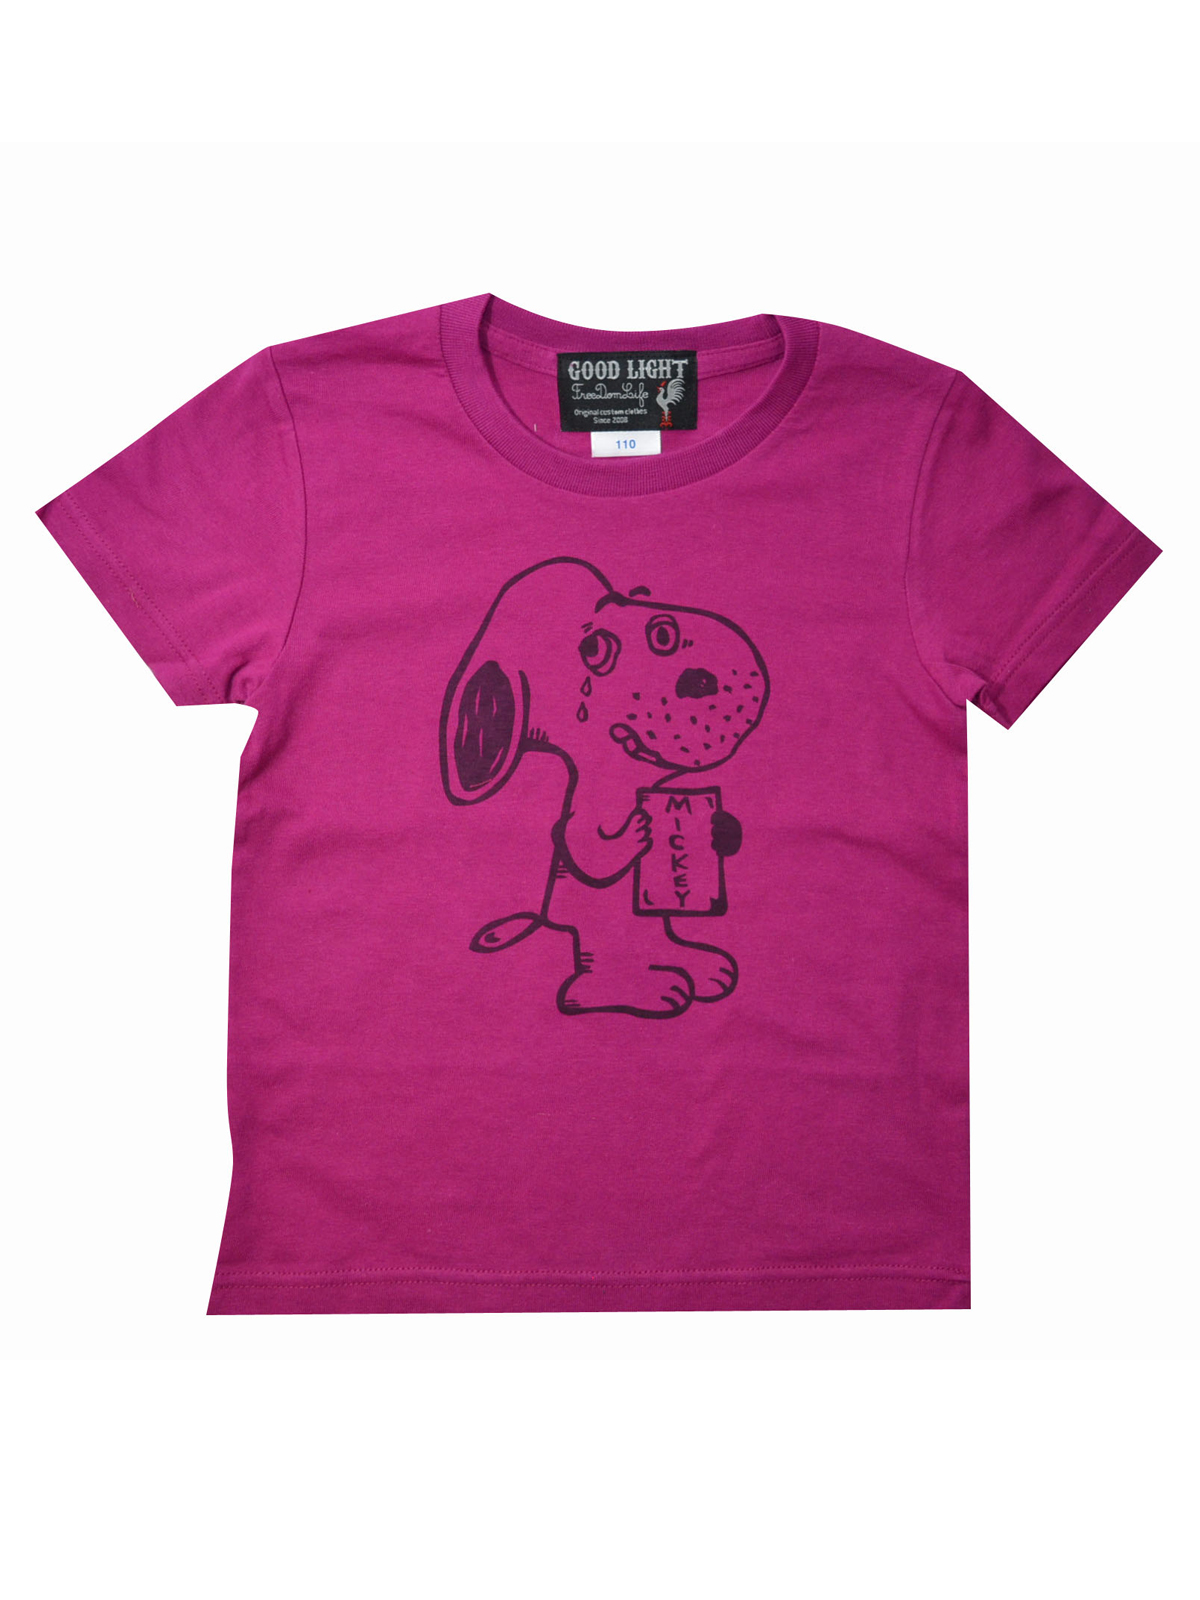 GOOD LIGHT KIDS INU TEE